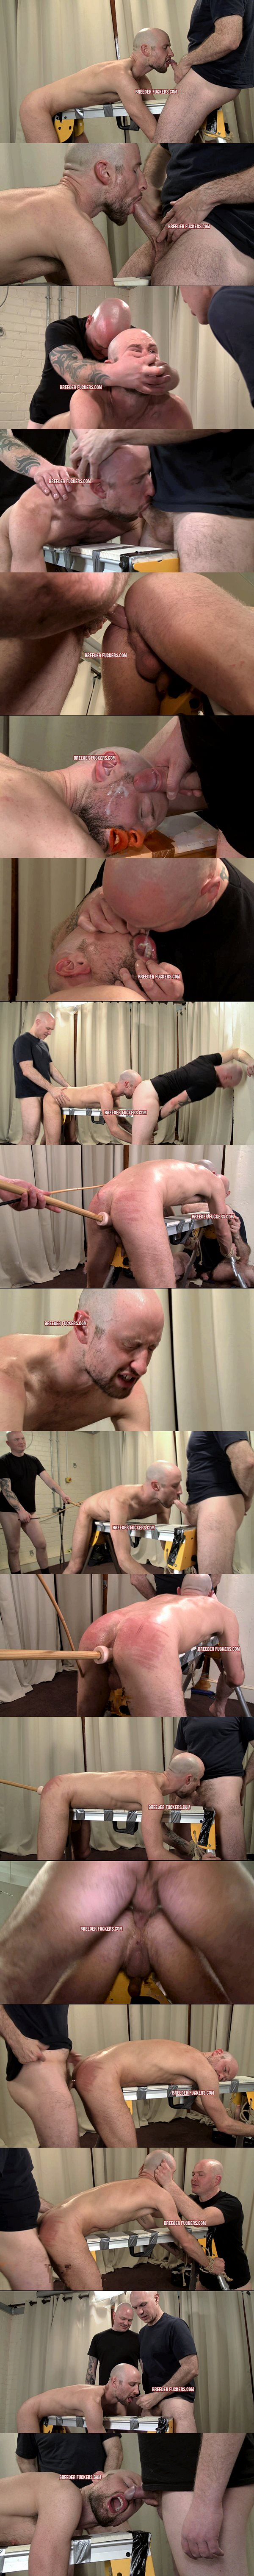 Hetero electrian Drew spitroasted, dildo fucked and face covered in spit and cum at Breederfuckers 02